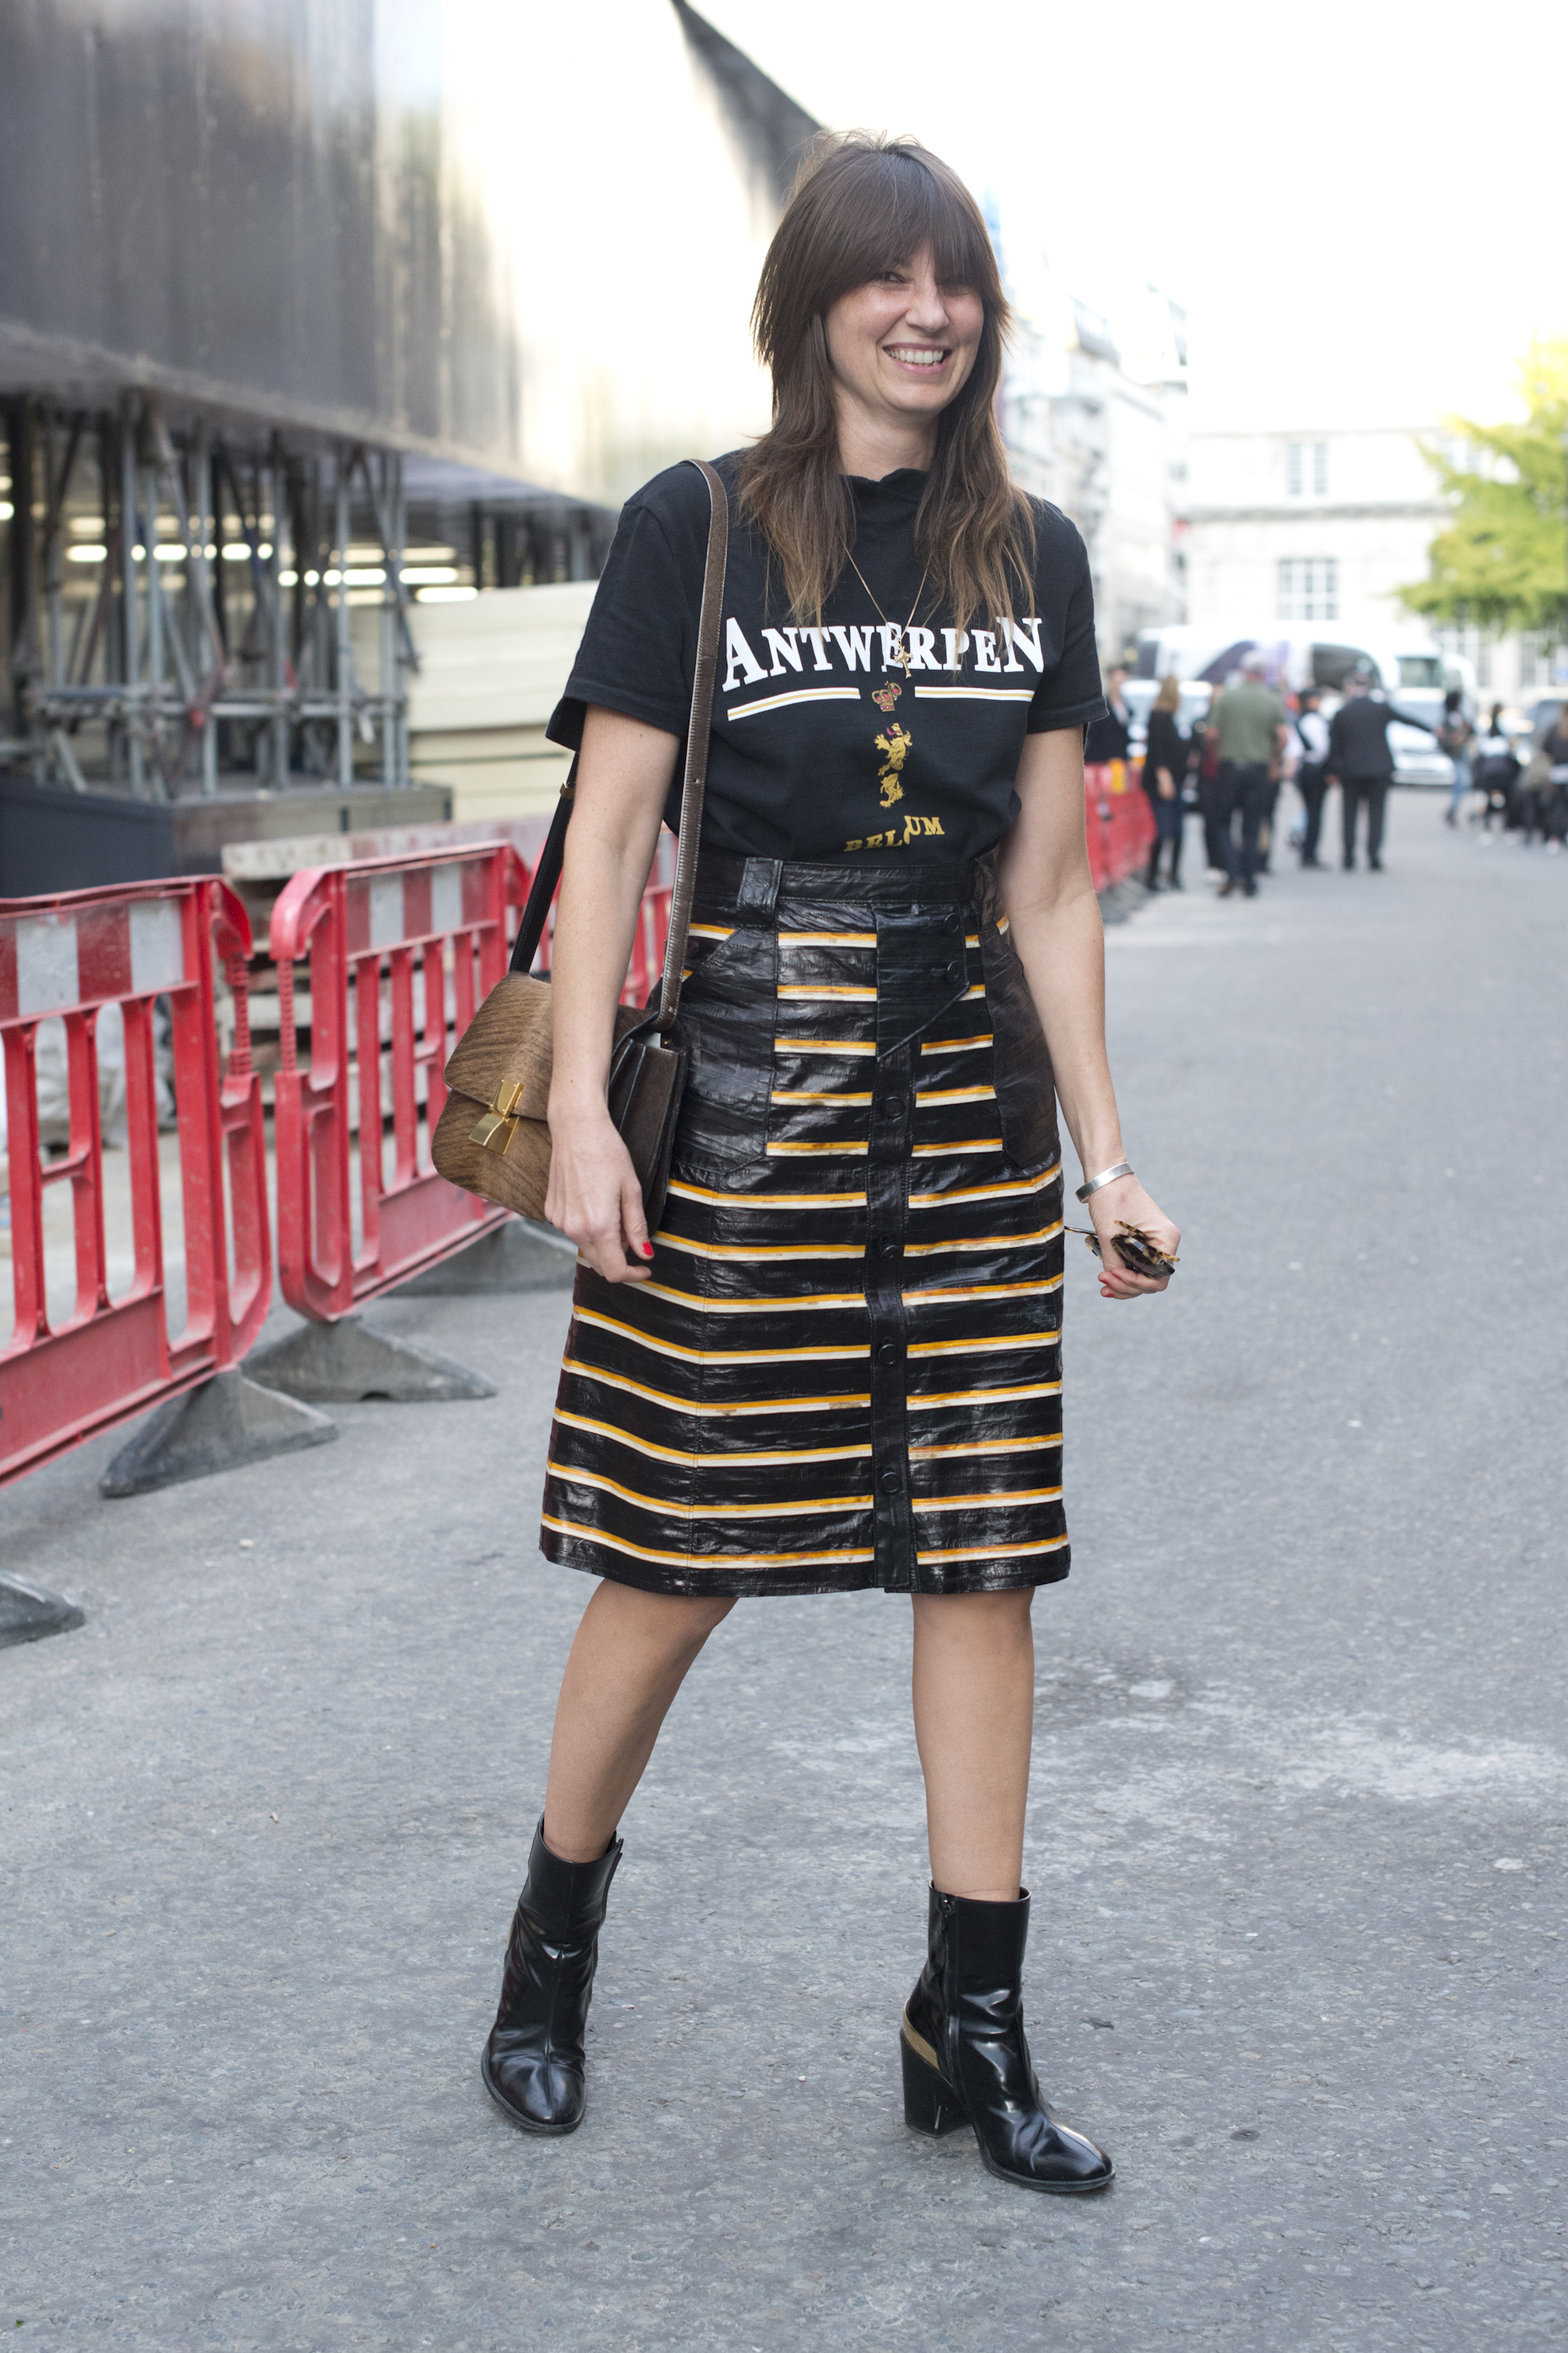 LONDON, ENGLAND - SEPTEMBER 19:  Fashion director Vanessa Coyle wears Vetements top, Proenza Schouler skirt, and Celine bag and shoes on day 2 during London Fashion Week Spring/Summer 2016/17 on September 19, 2015 in London, England.  (Photo by Kirstin Sinclair/Getty Images)